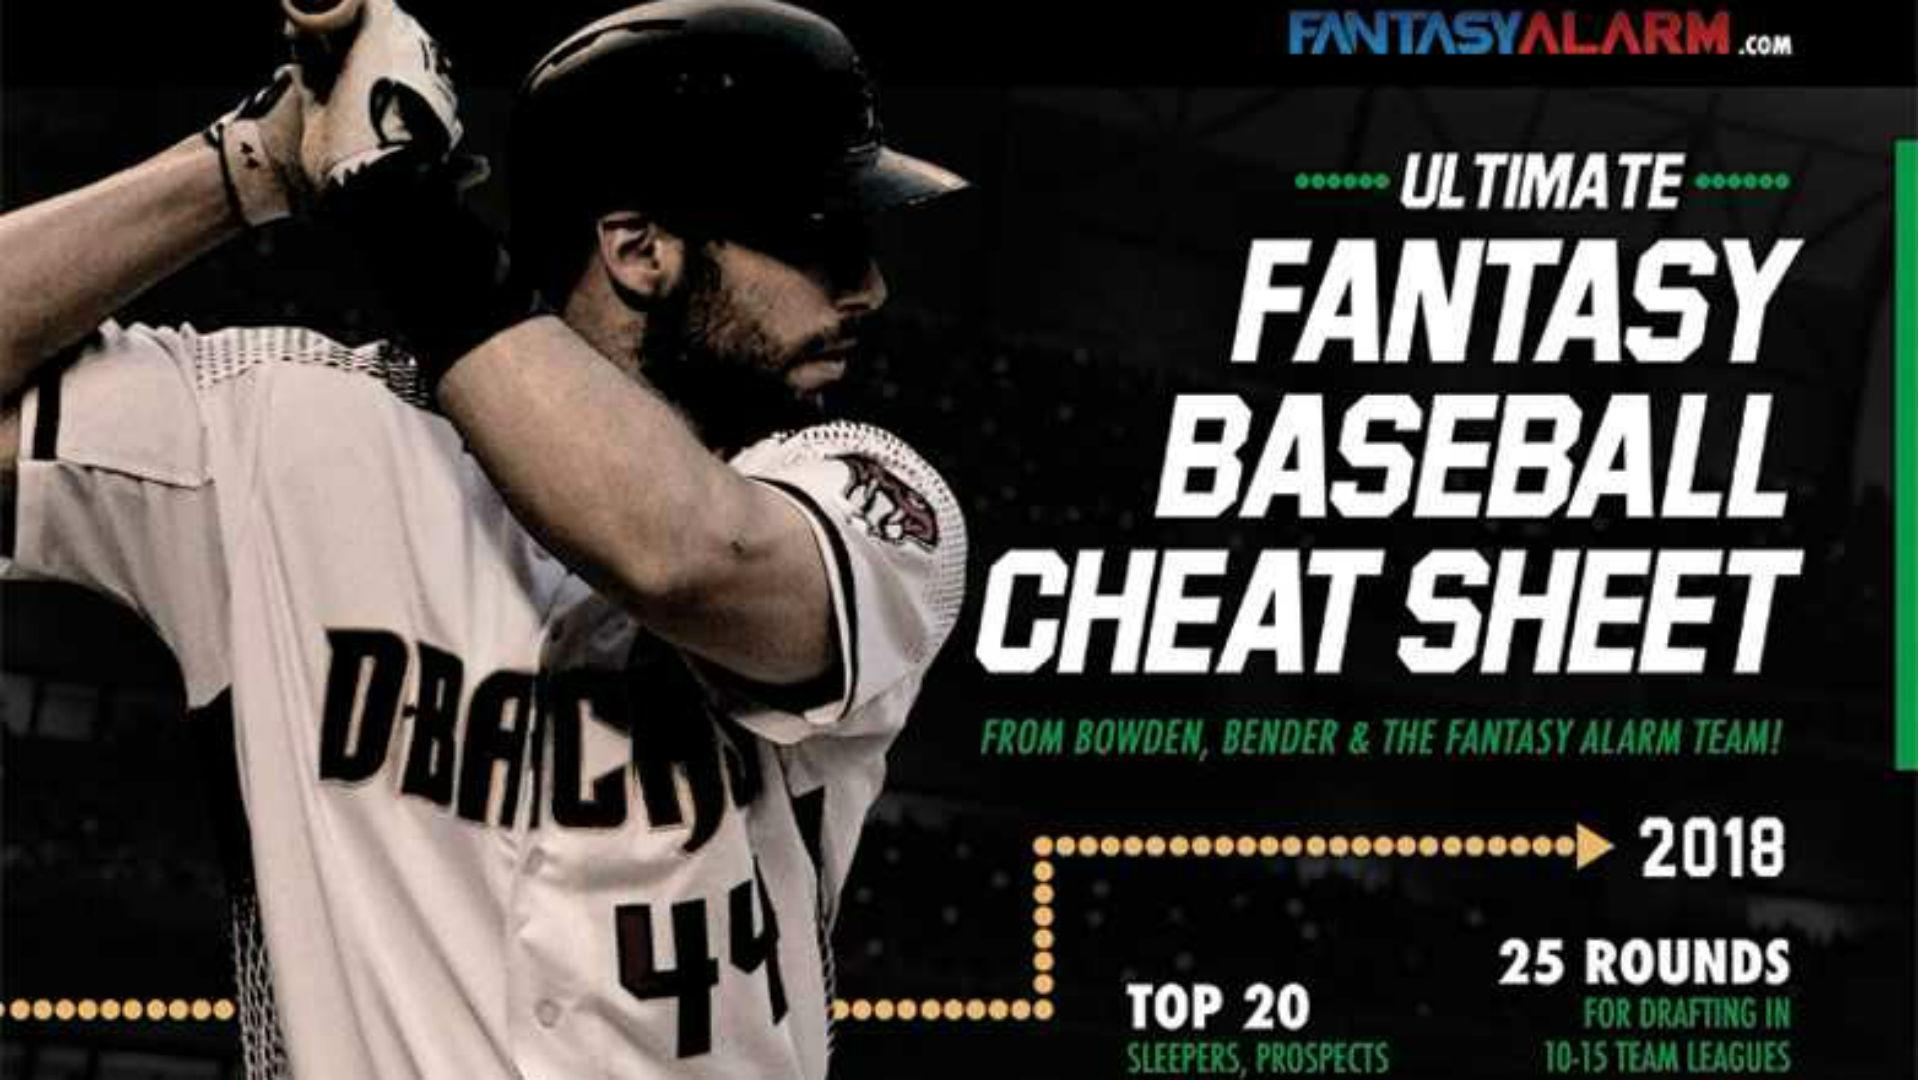 Prepare for your draft with Fantasy Alarm's Ultimate ...